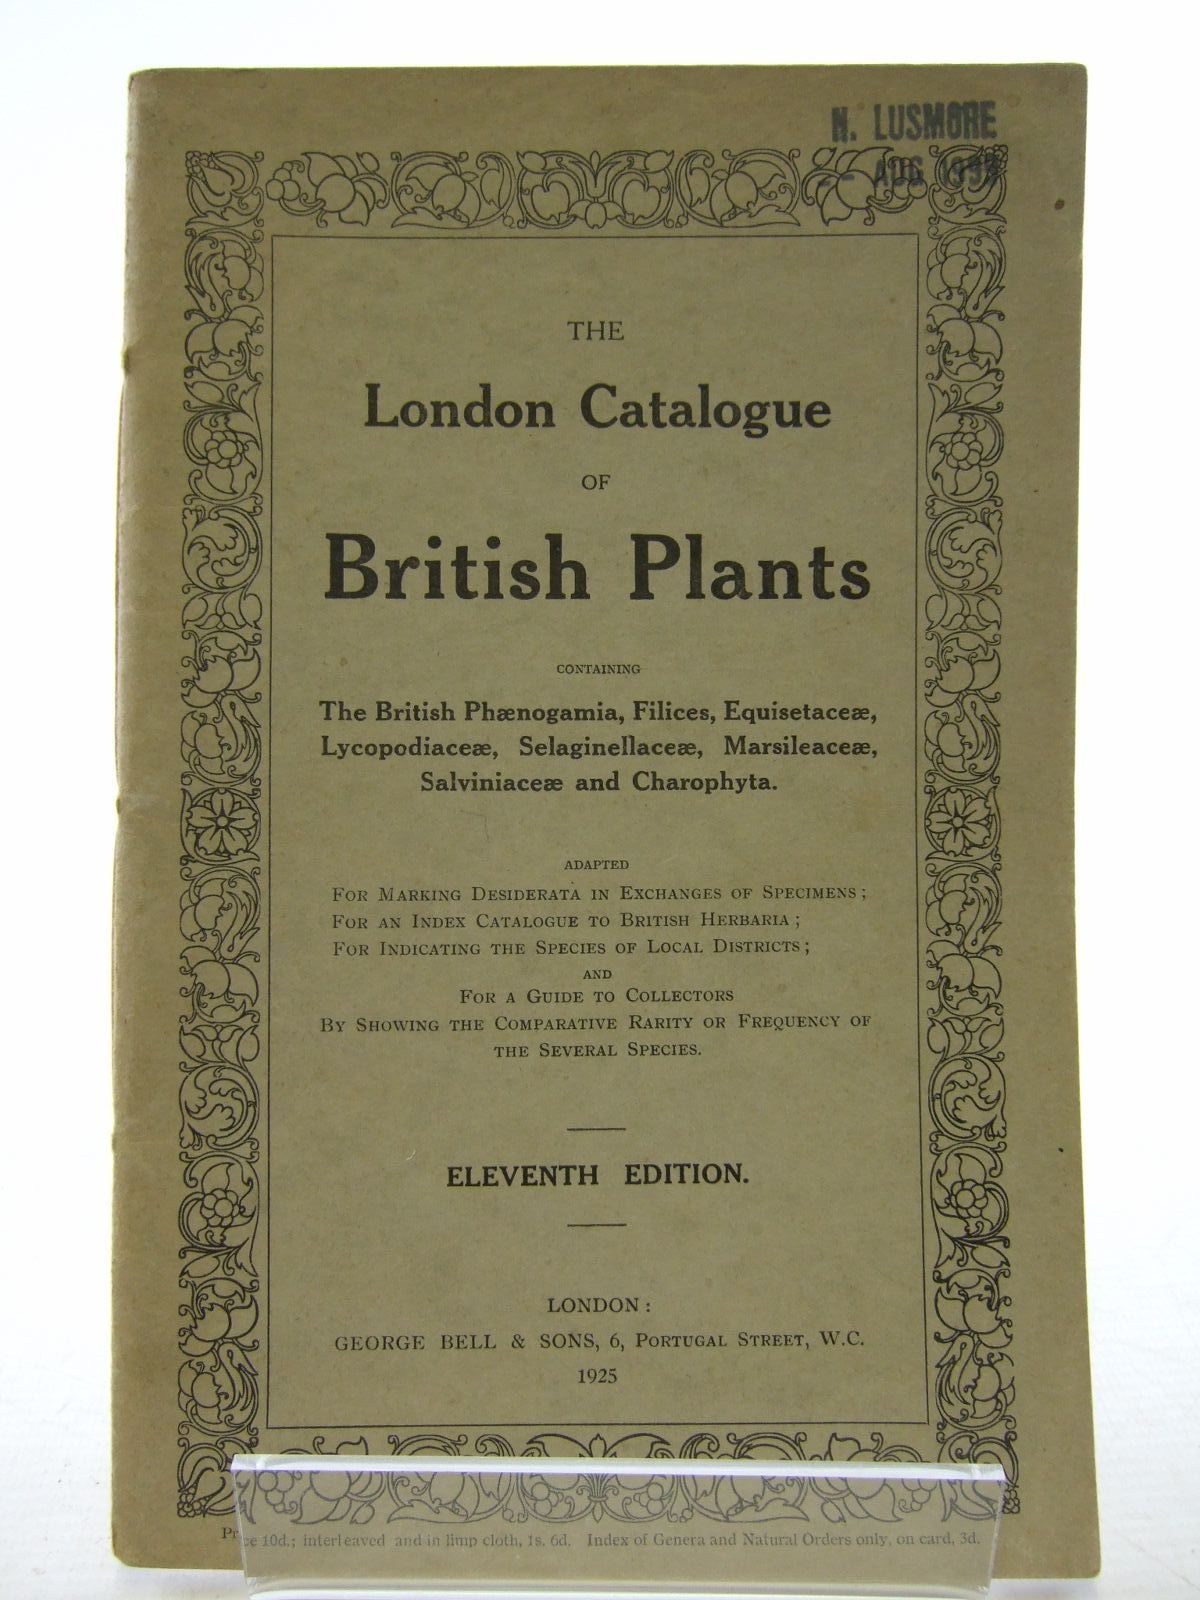 a census catalogue of british hepatics written by wilson